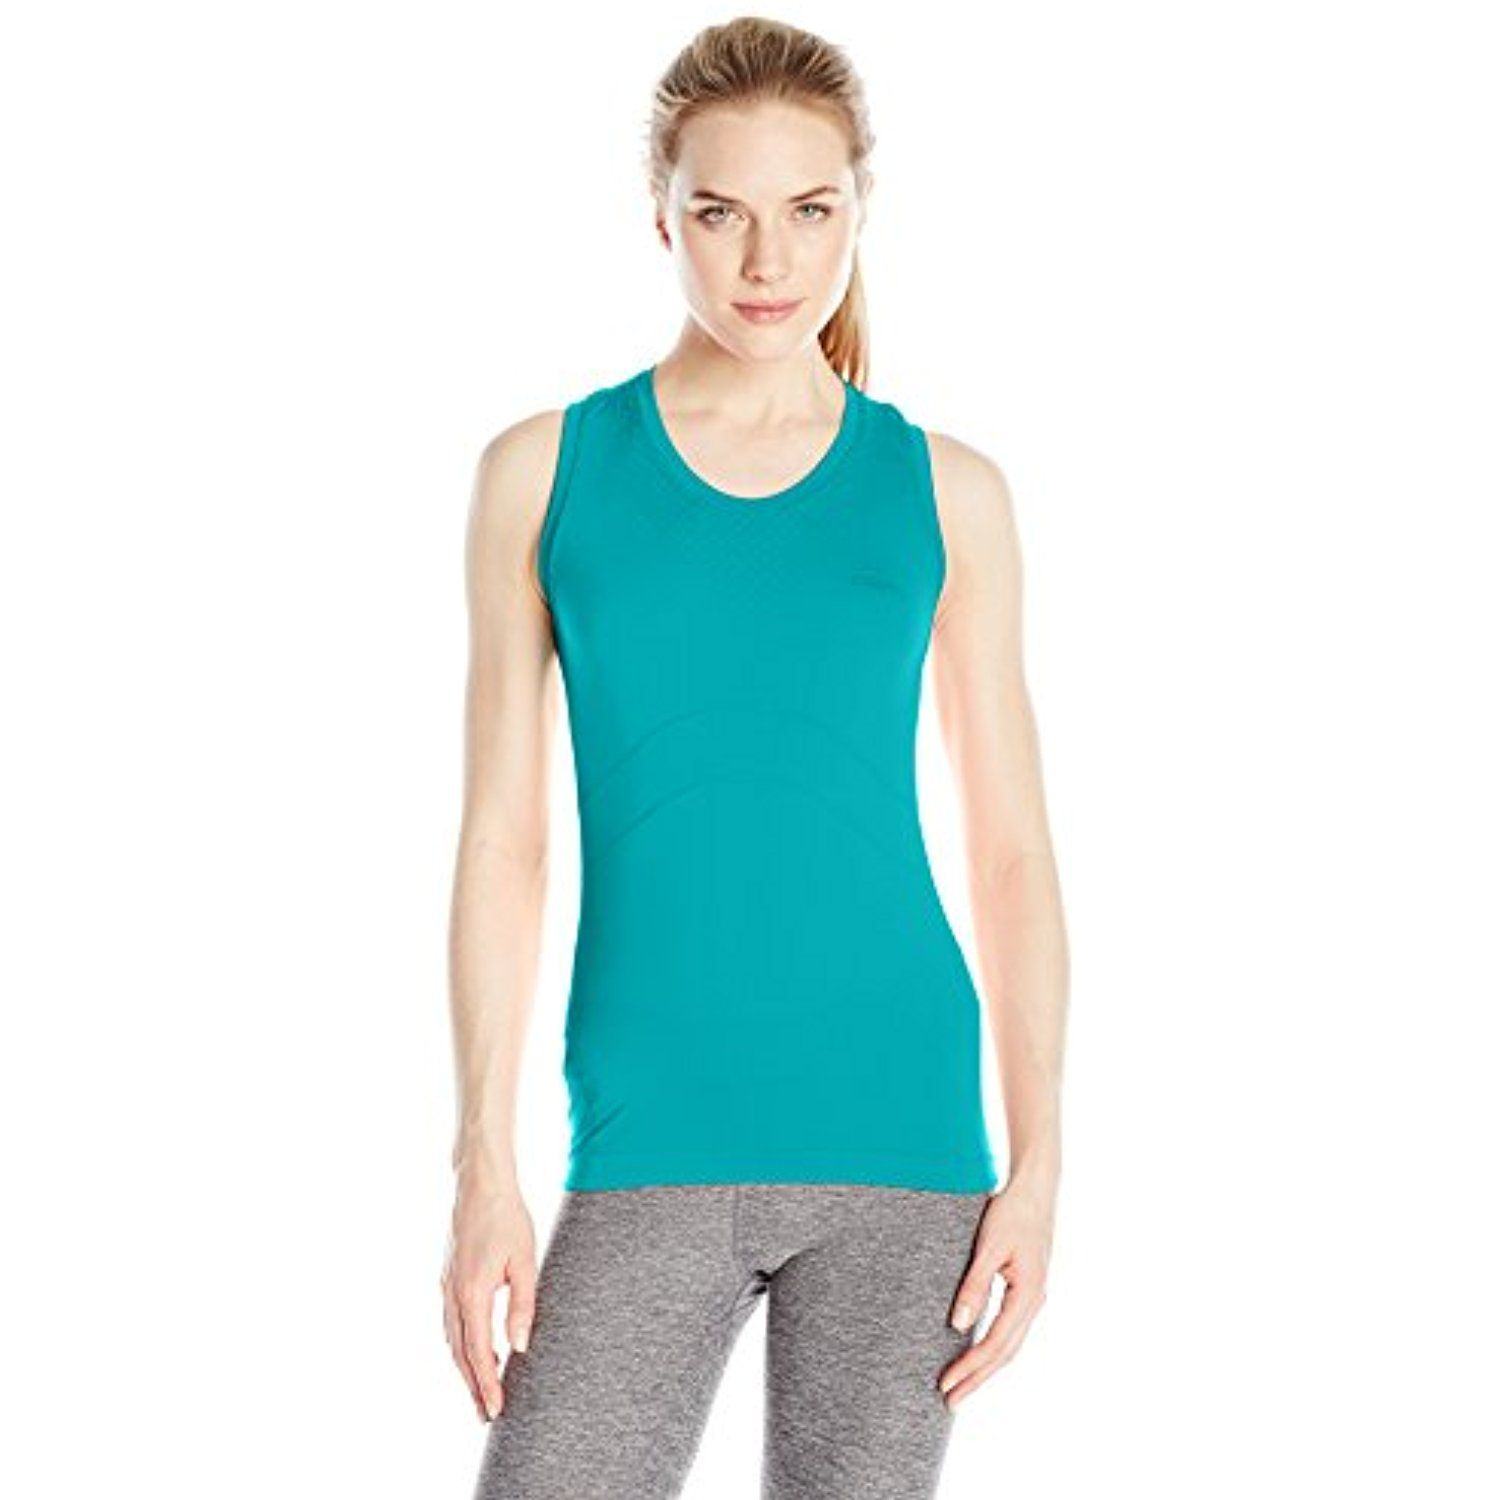 dryfit//lightweight//protection//sun//athletic//athleisure//quick//wicking//performance//exercise//trail Craft Sportswear Womens Cool Seamless Cooling Running and Training Fitness Workout Long Sleeve Shirt